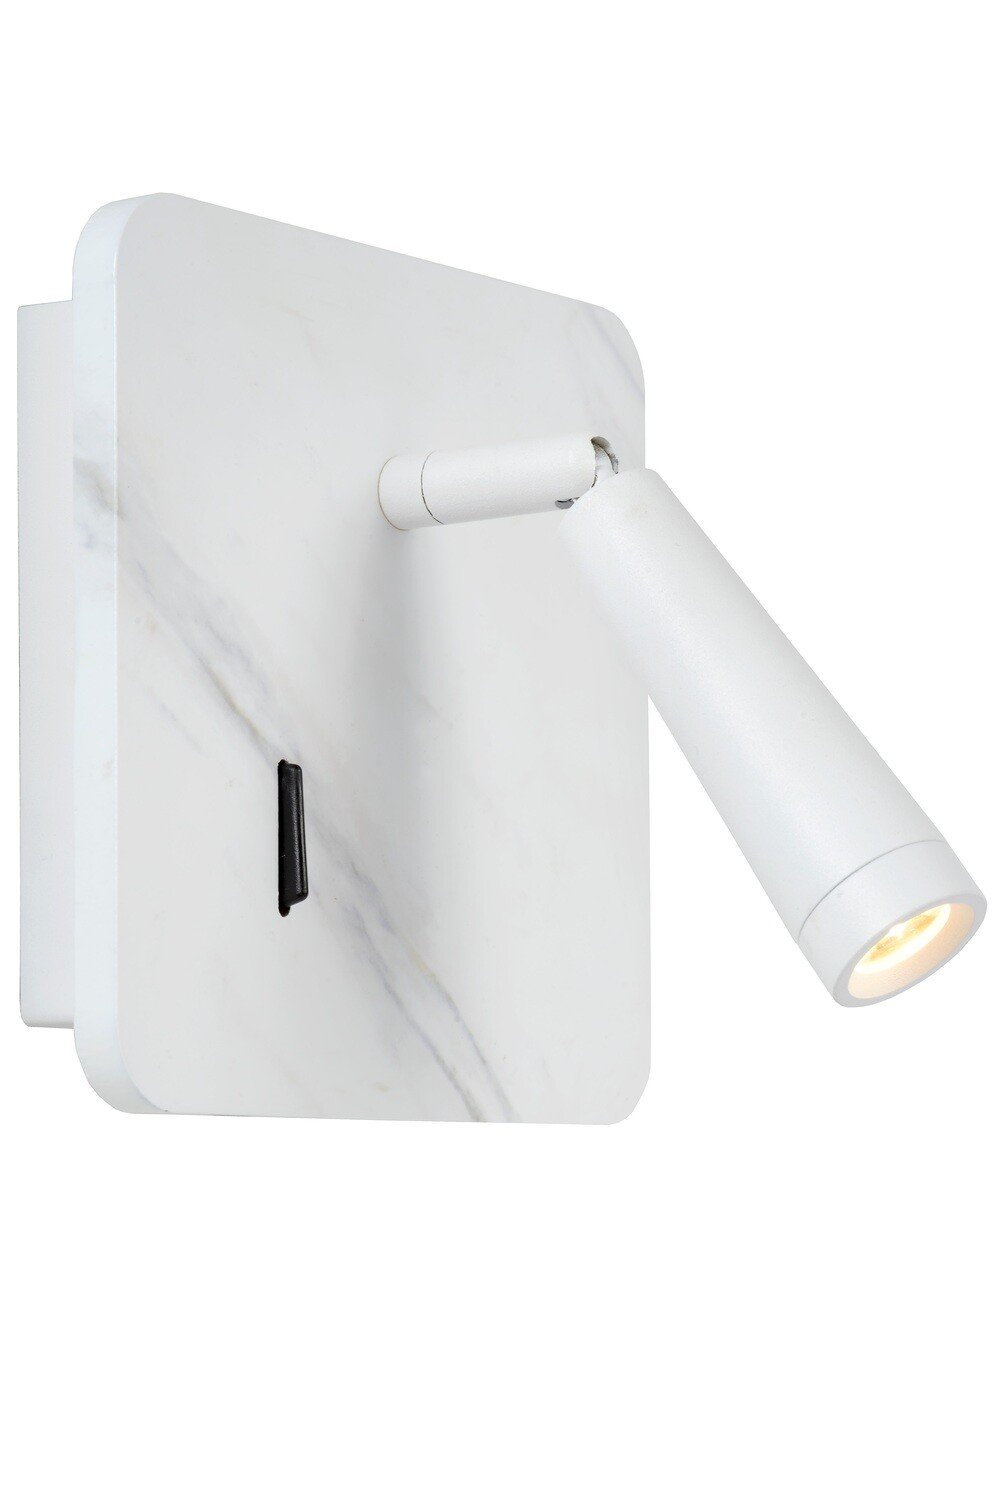 OREGON Bedside lamp LED 1x3W 3000K With USB charging point  White